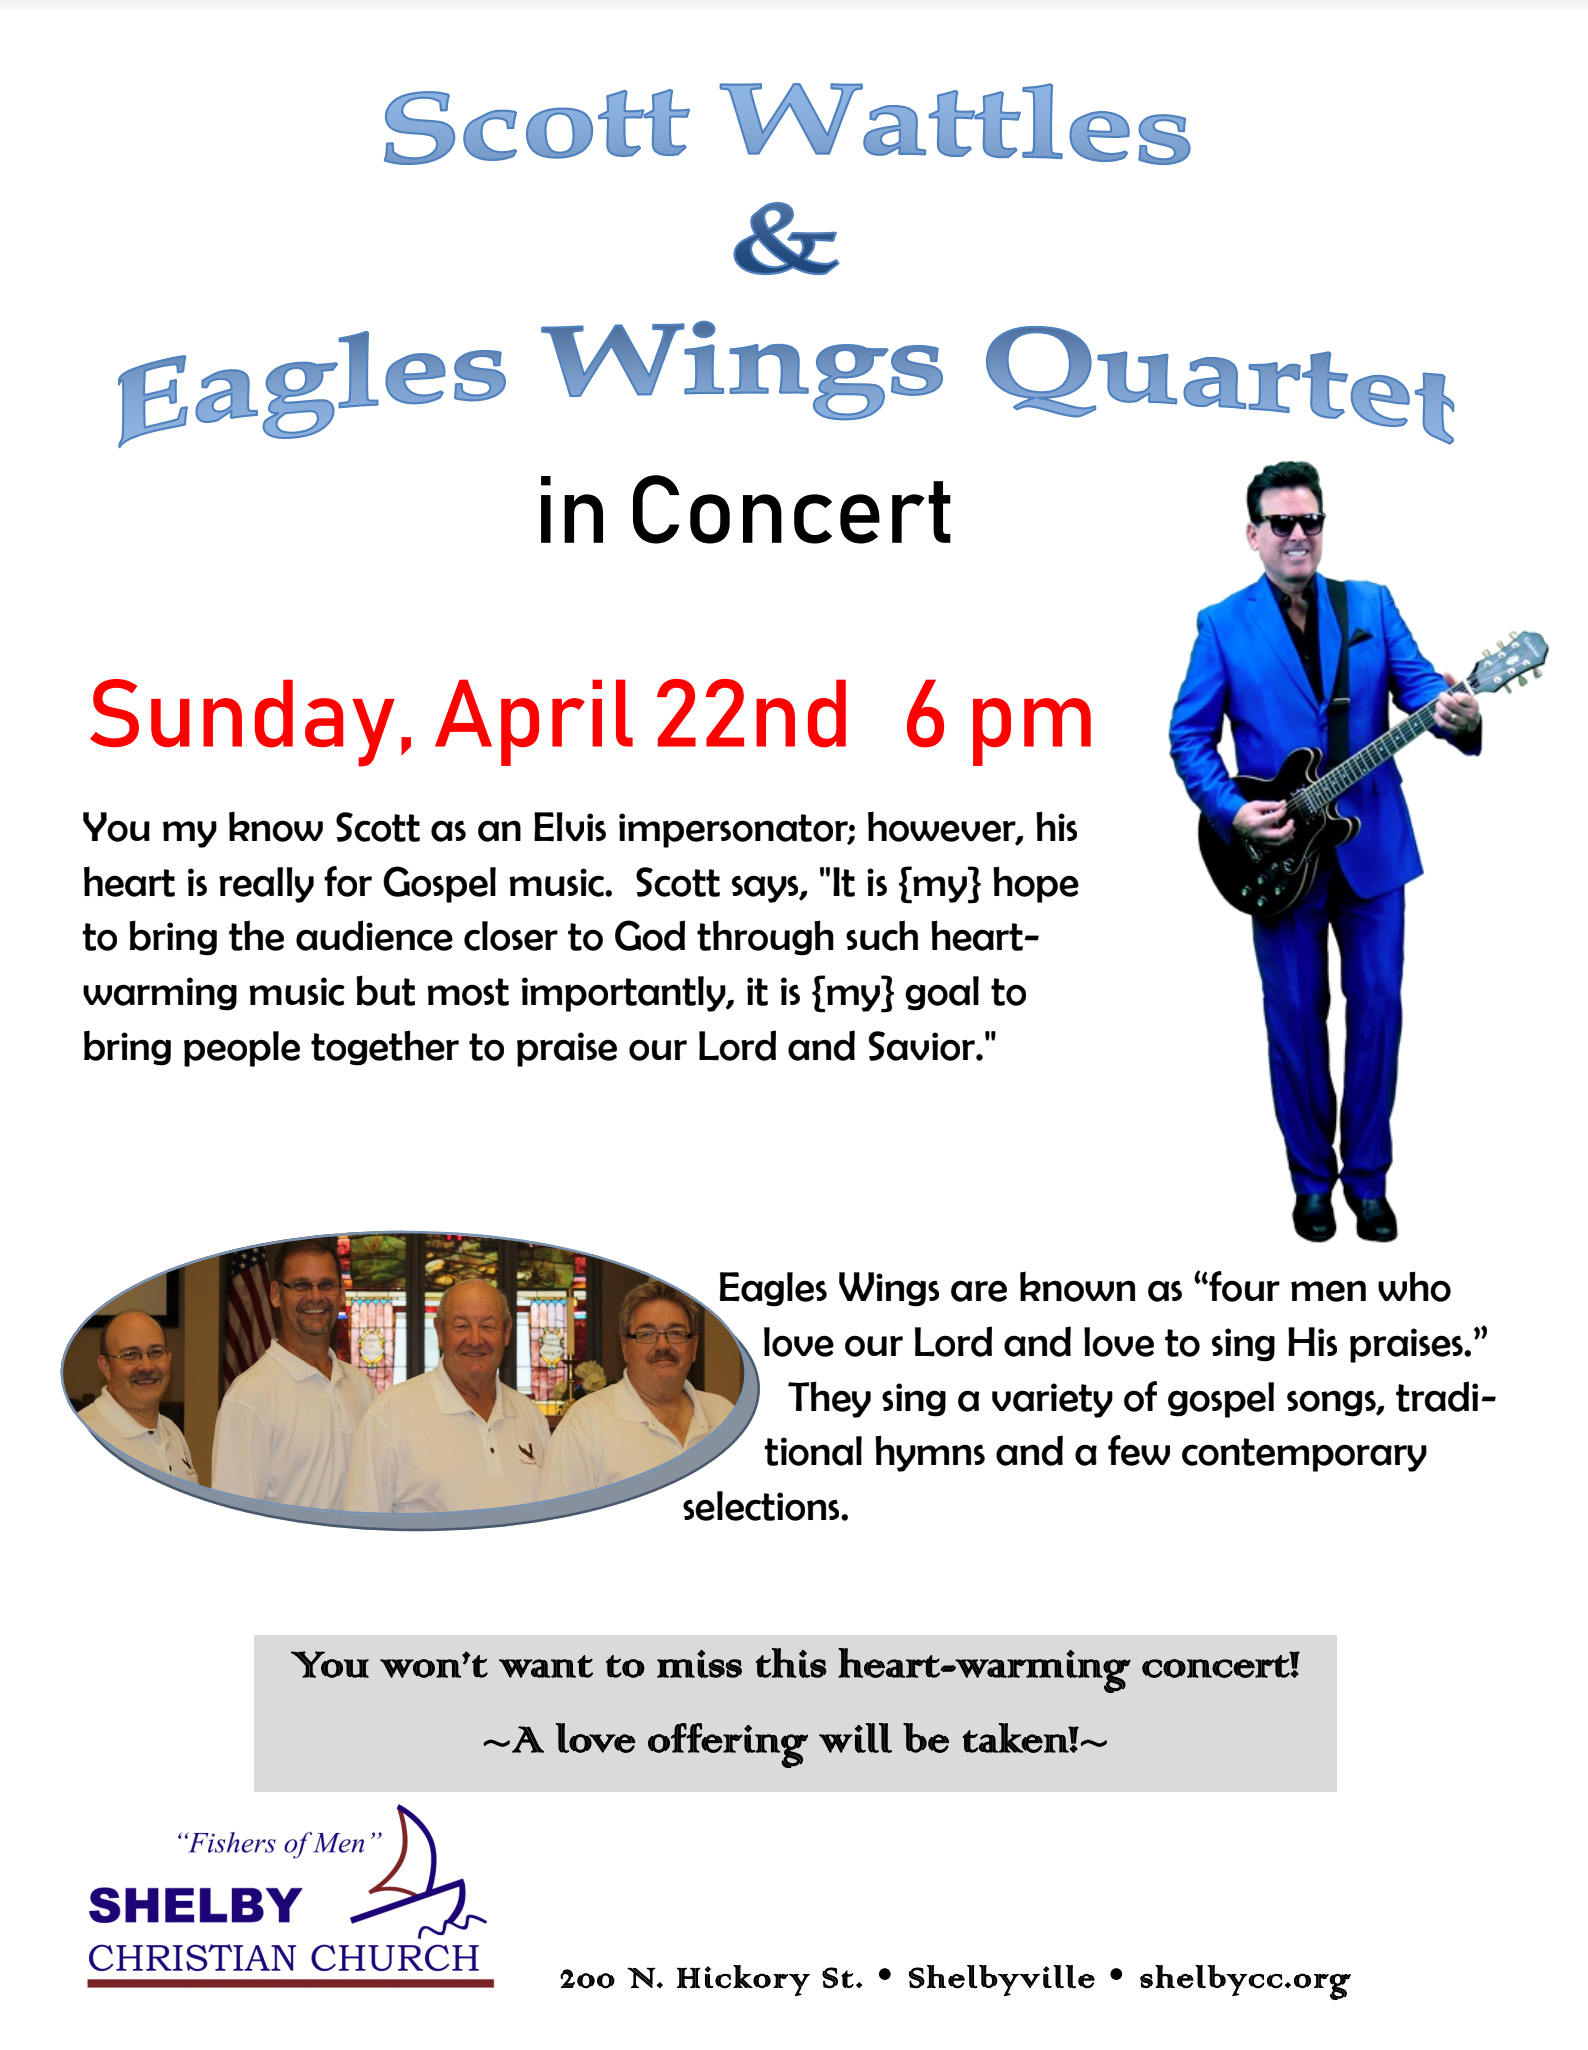 Scott Wattles and Eagles Wings Quartet in Concert